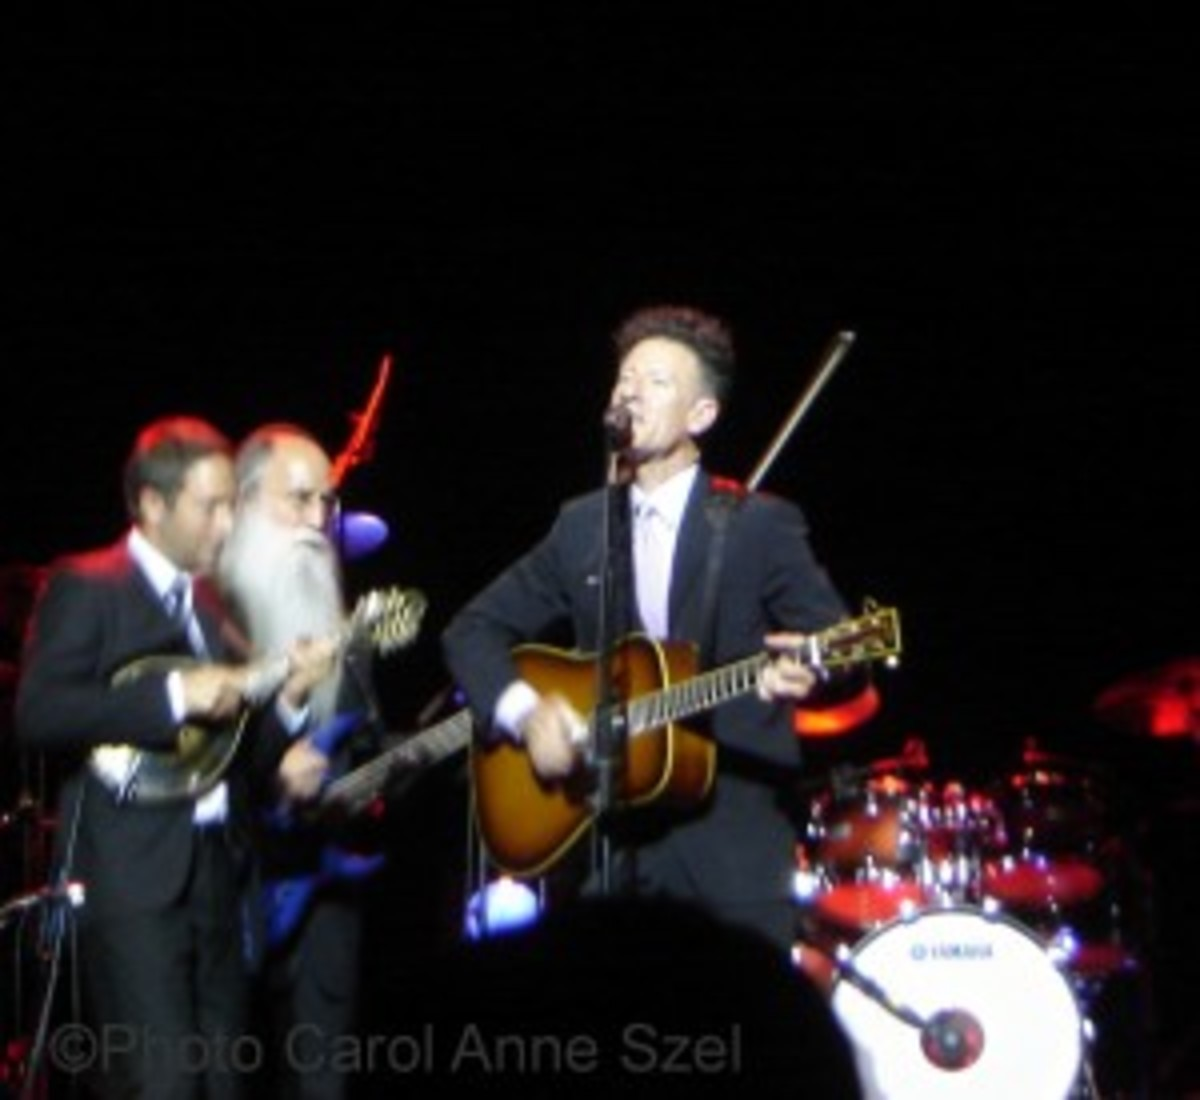 Lyle Lovett front with 2 players - best watermarked